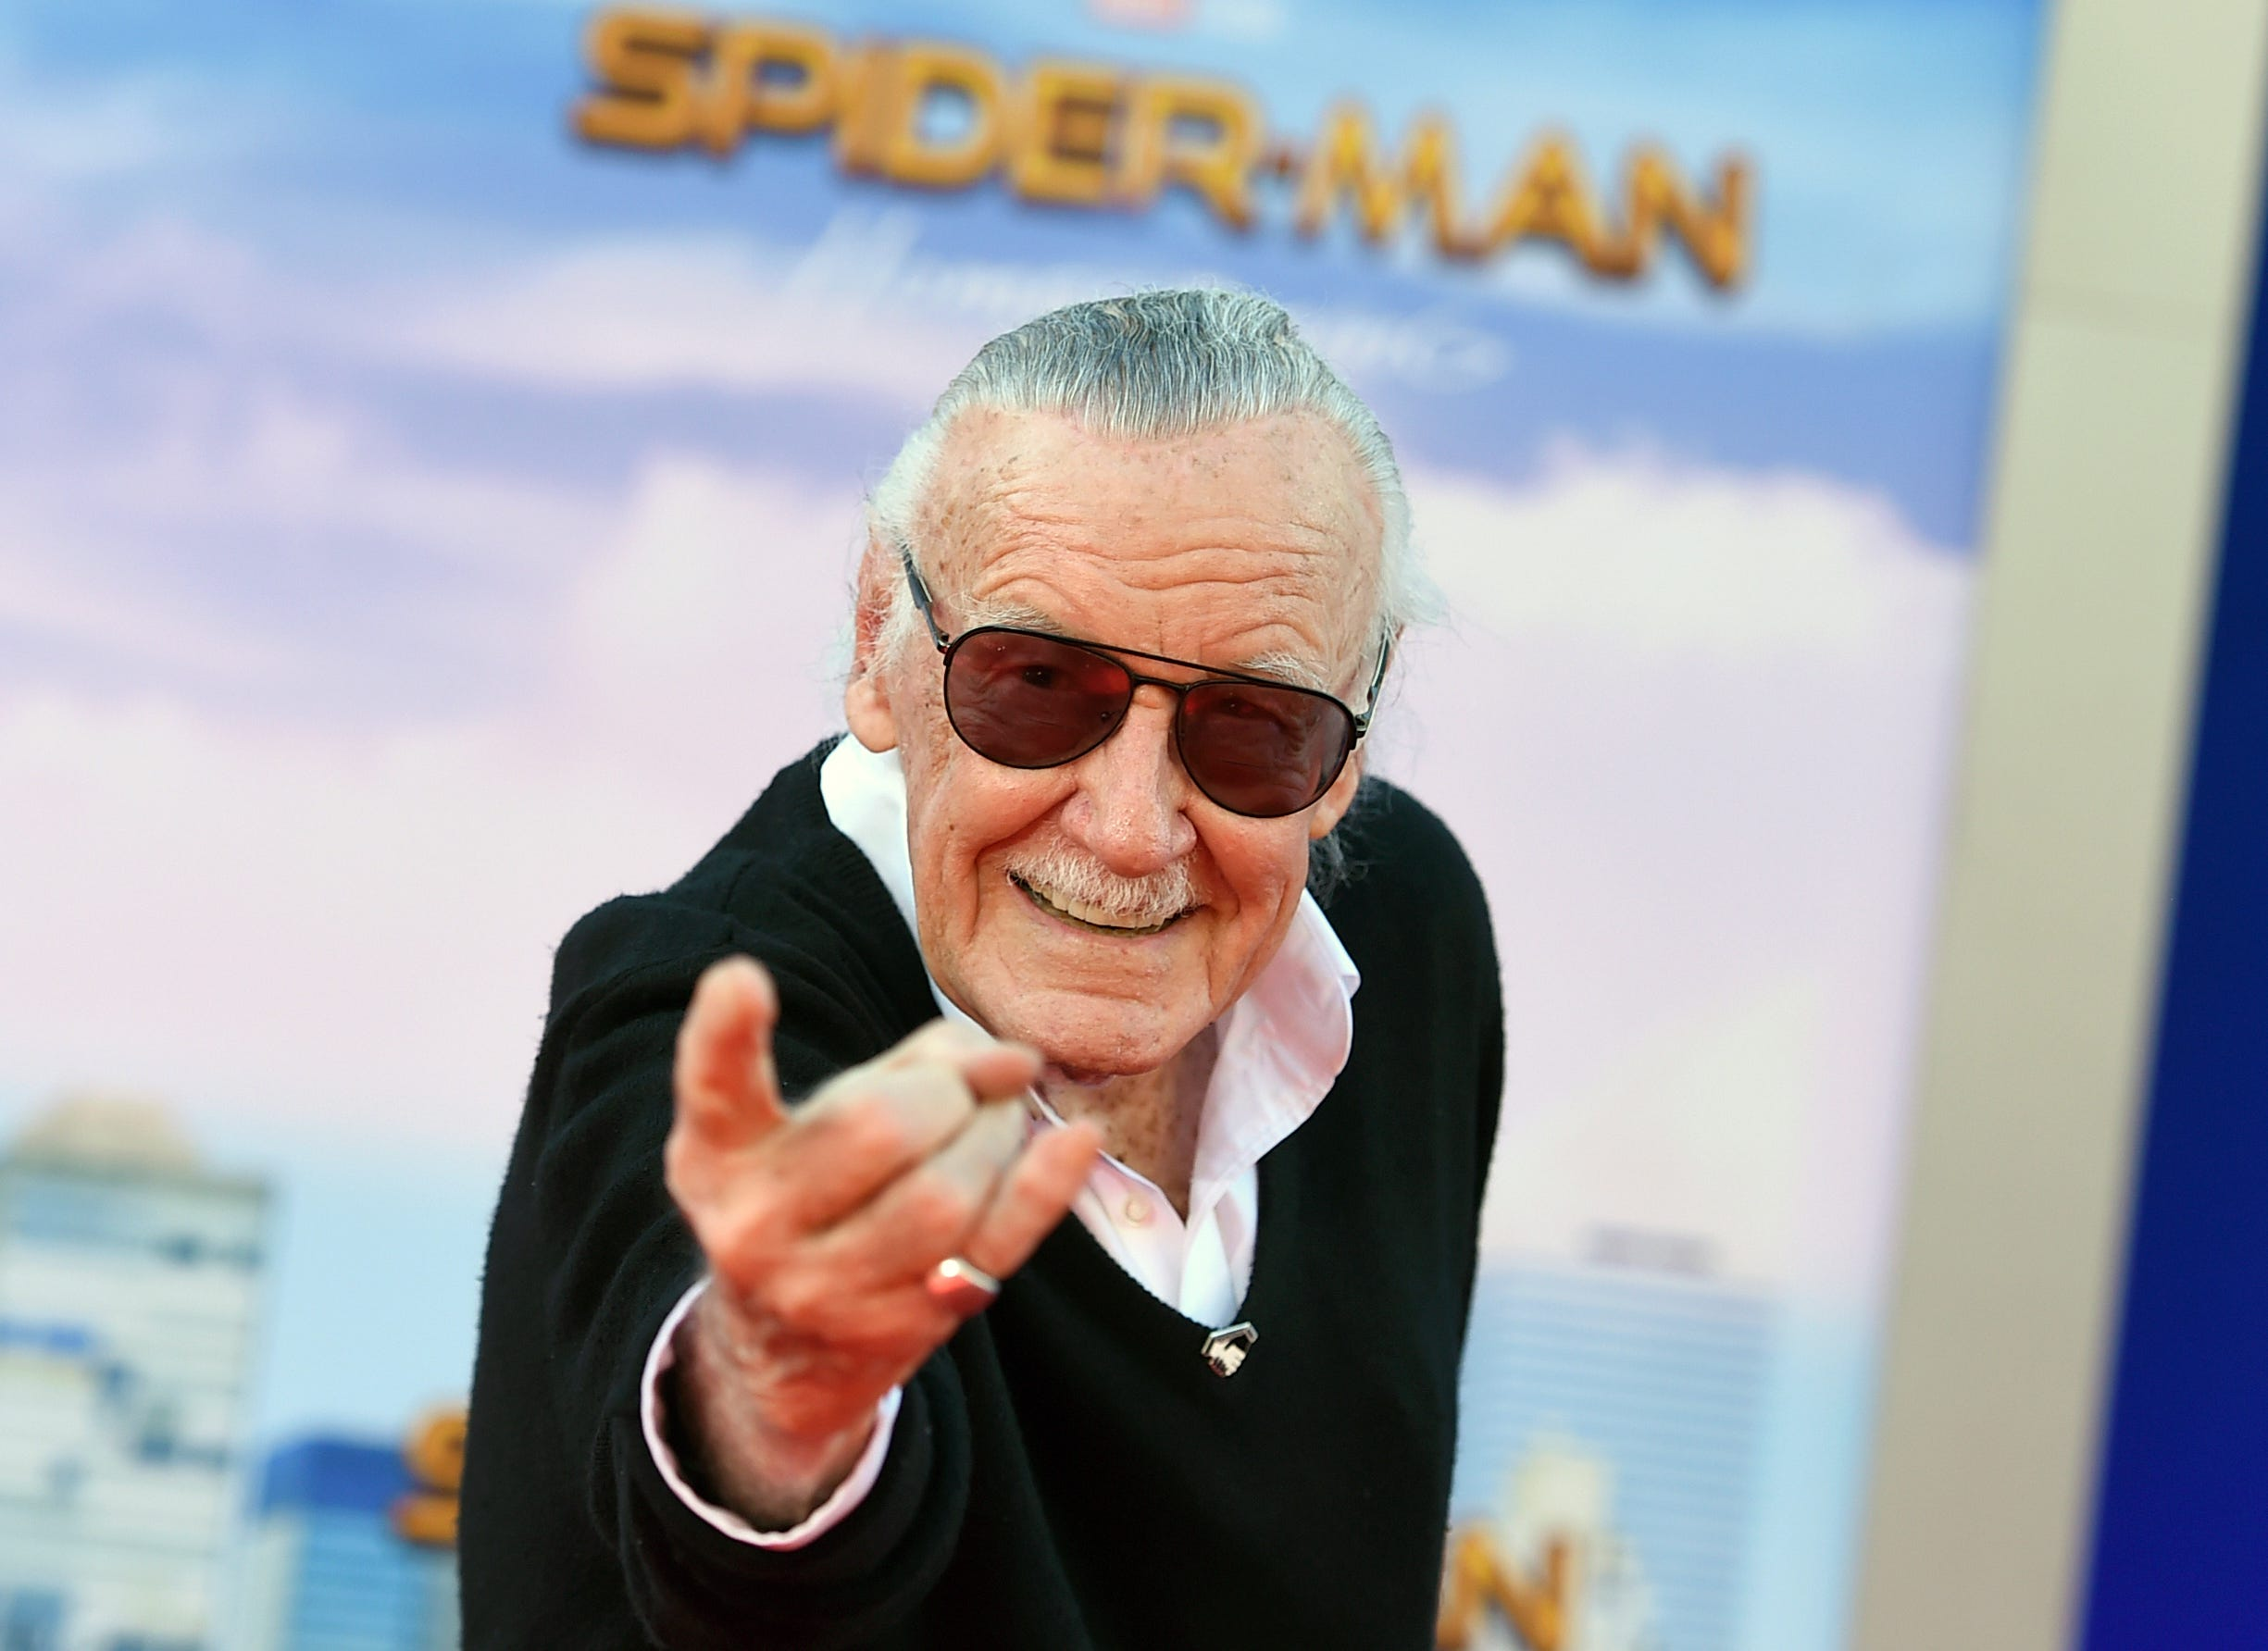 Stan Lee's former manager charged with elder abuse of the late Marvel icon